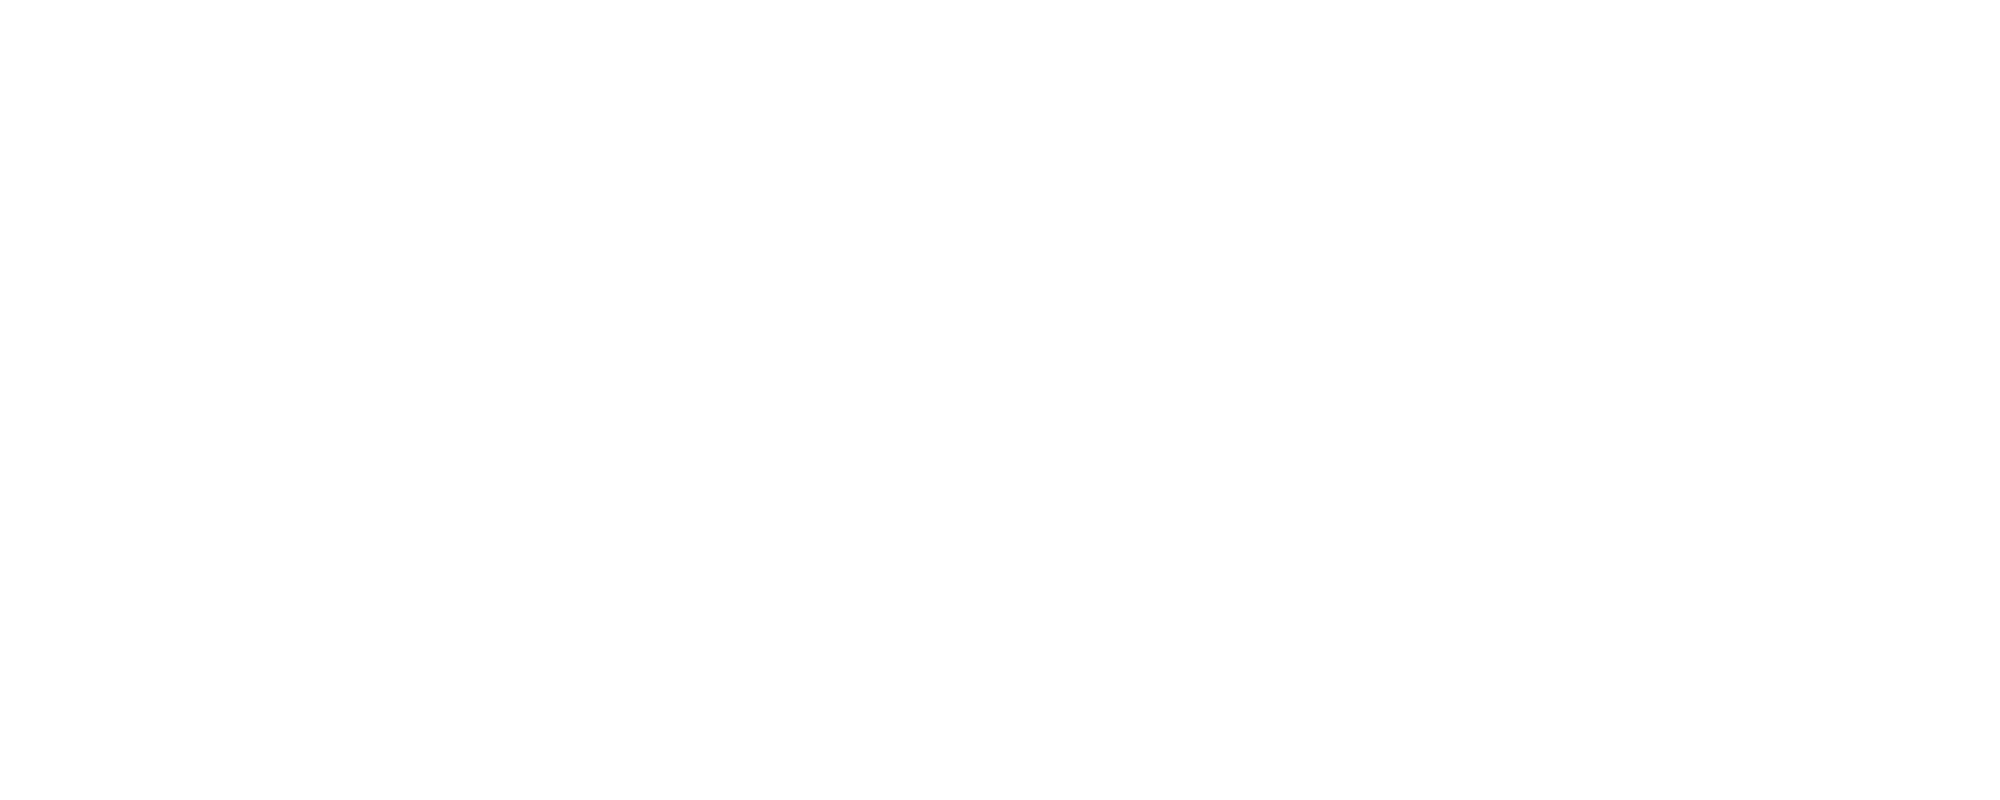 Northern Davidson County Chamber of Commerce